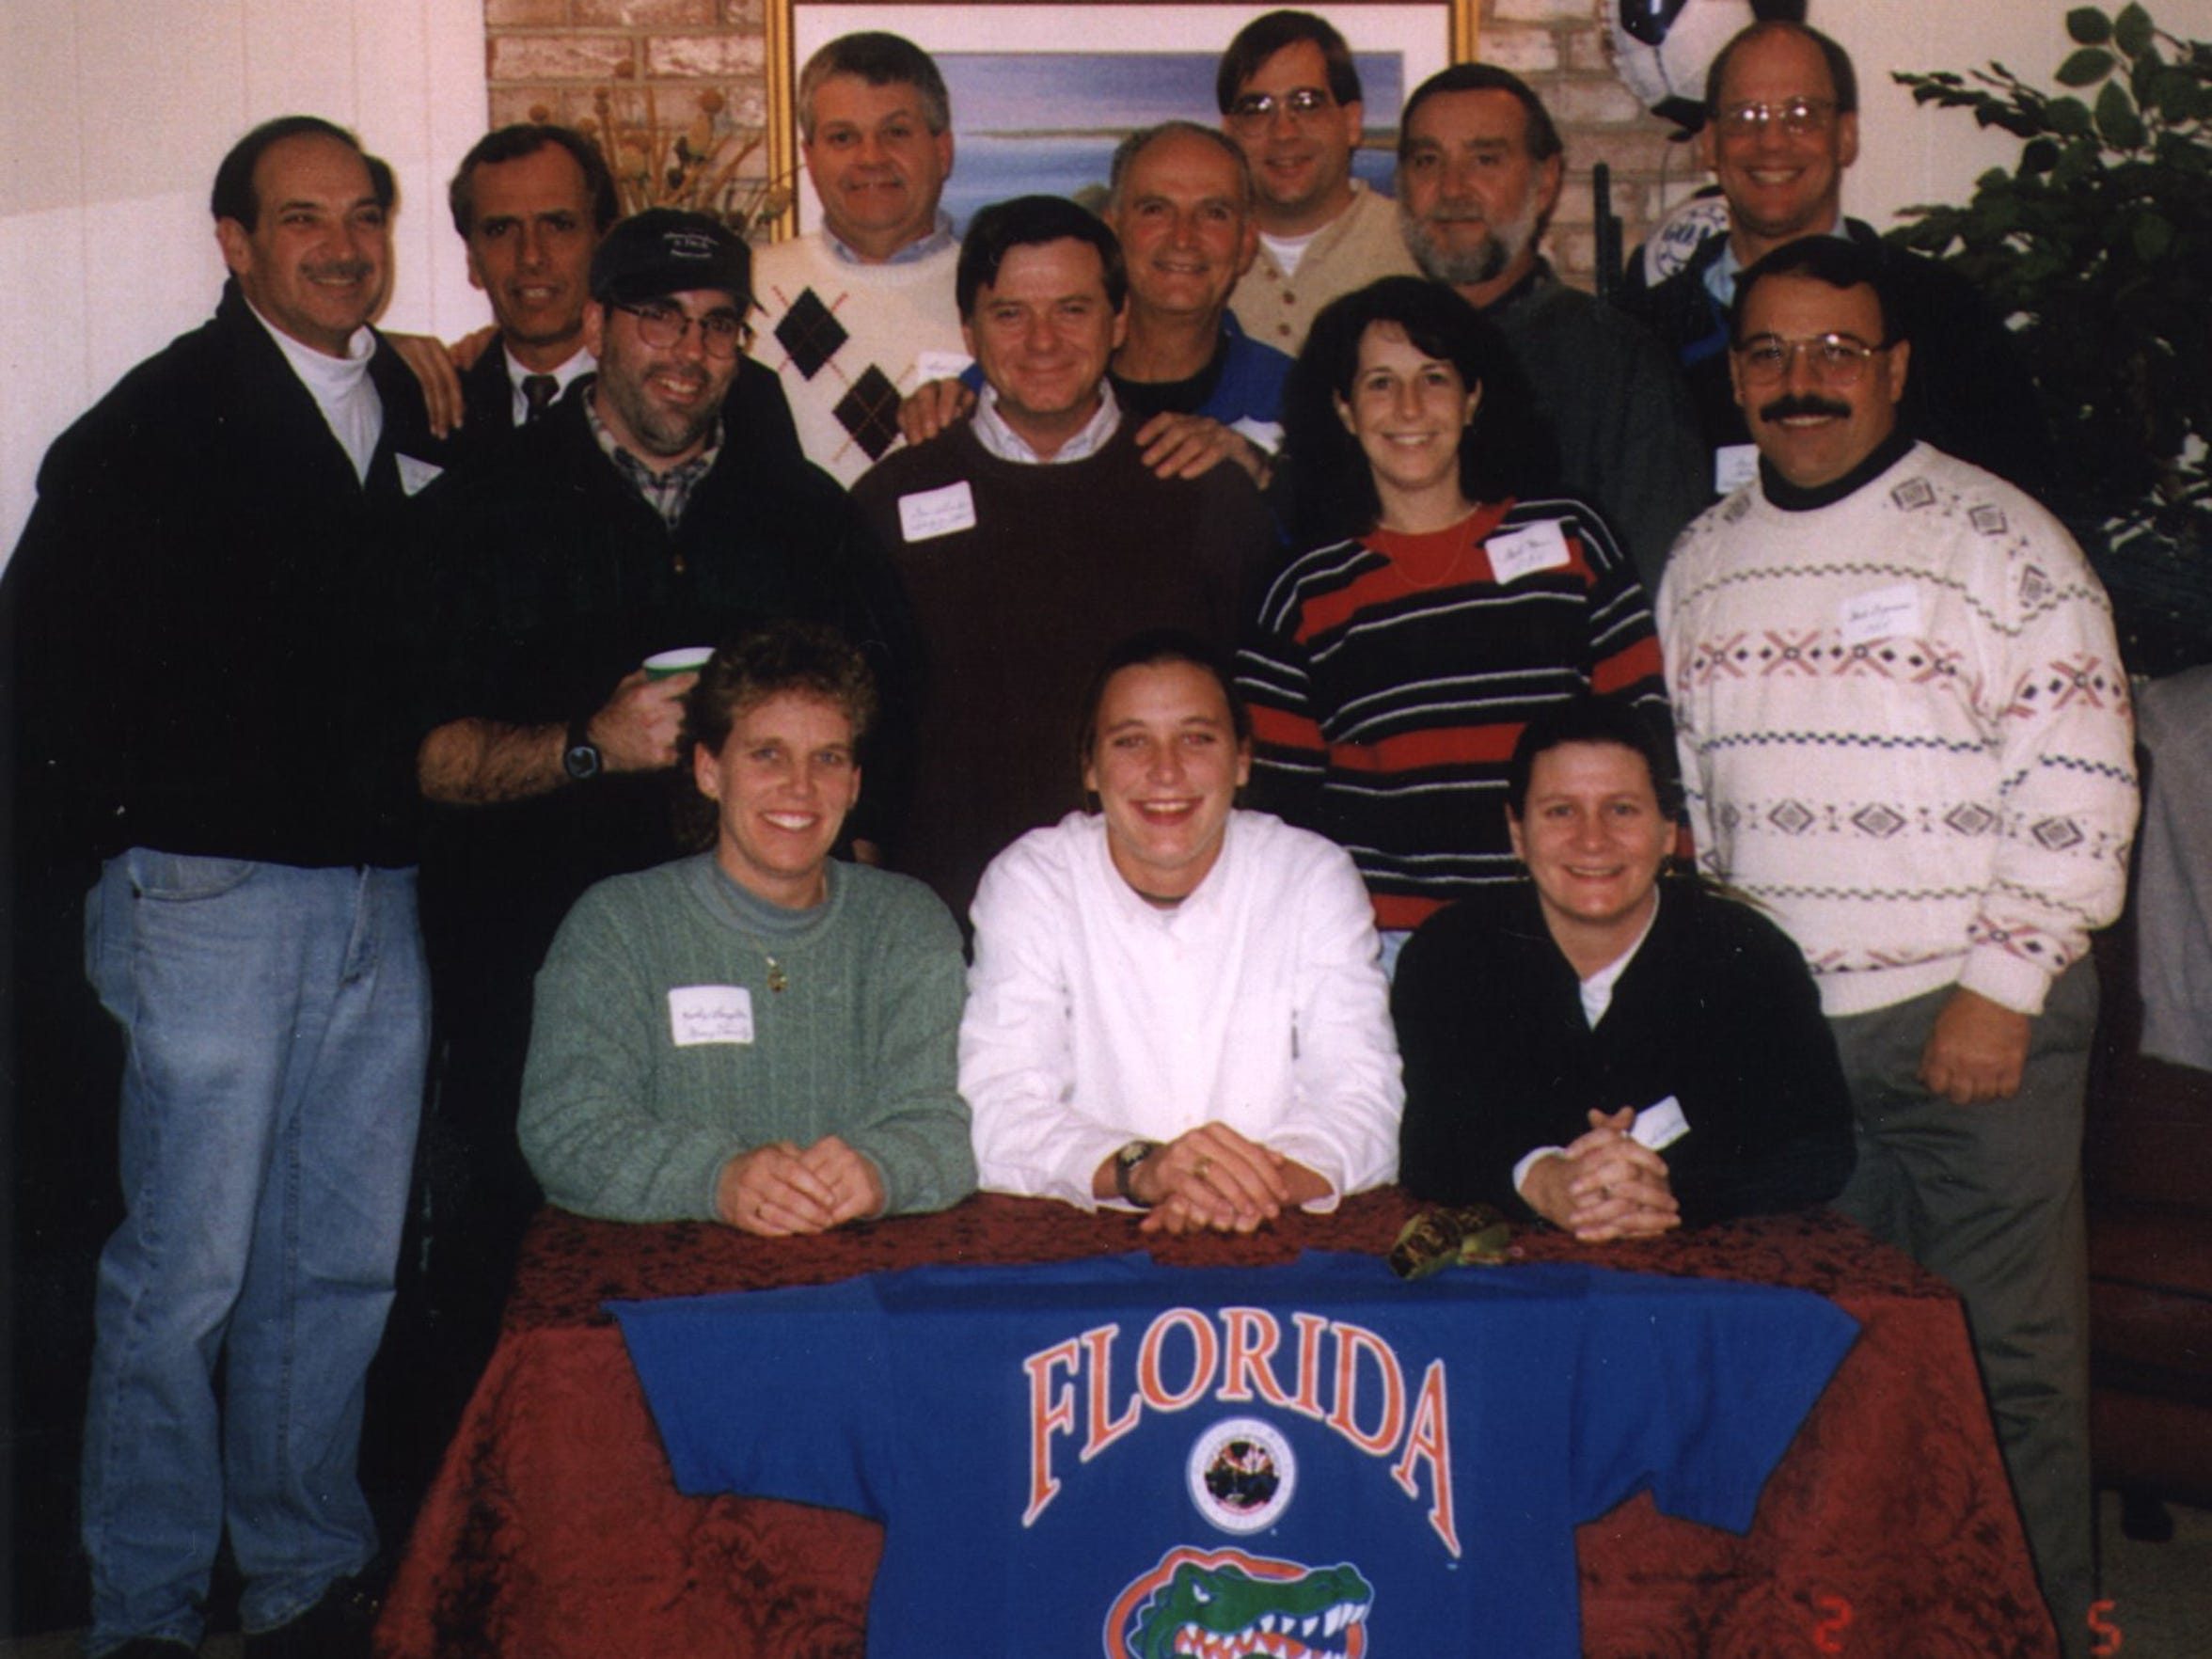 Abby Wambach, center, on the day she signed her letter of intent with the University of Florida on Nov. 27, 1997.